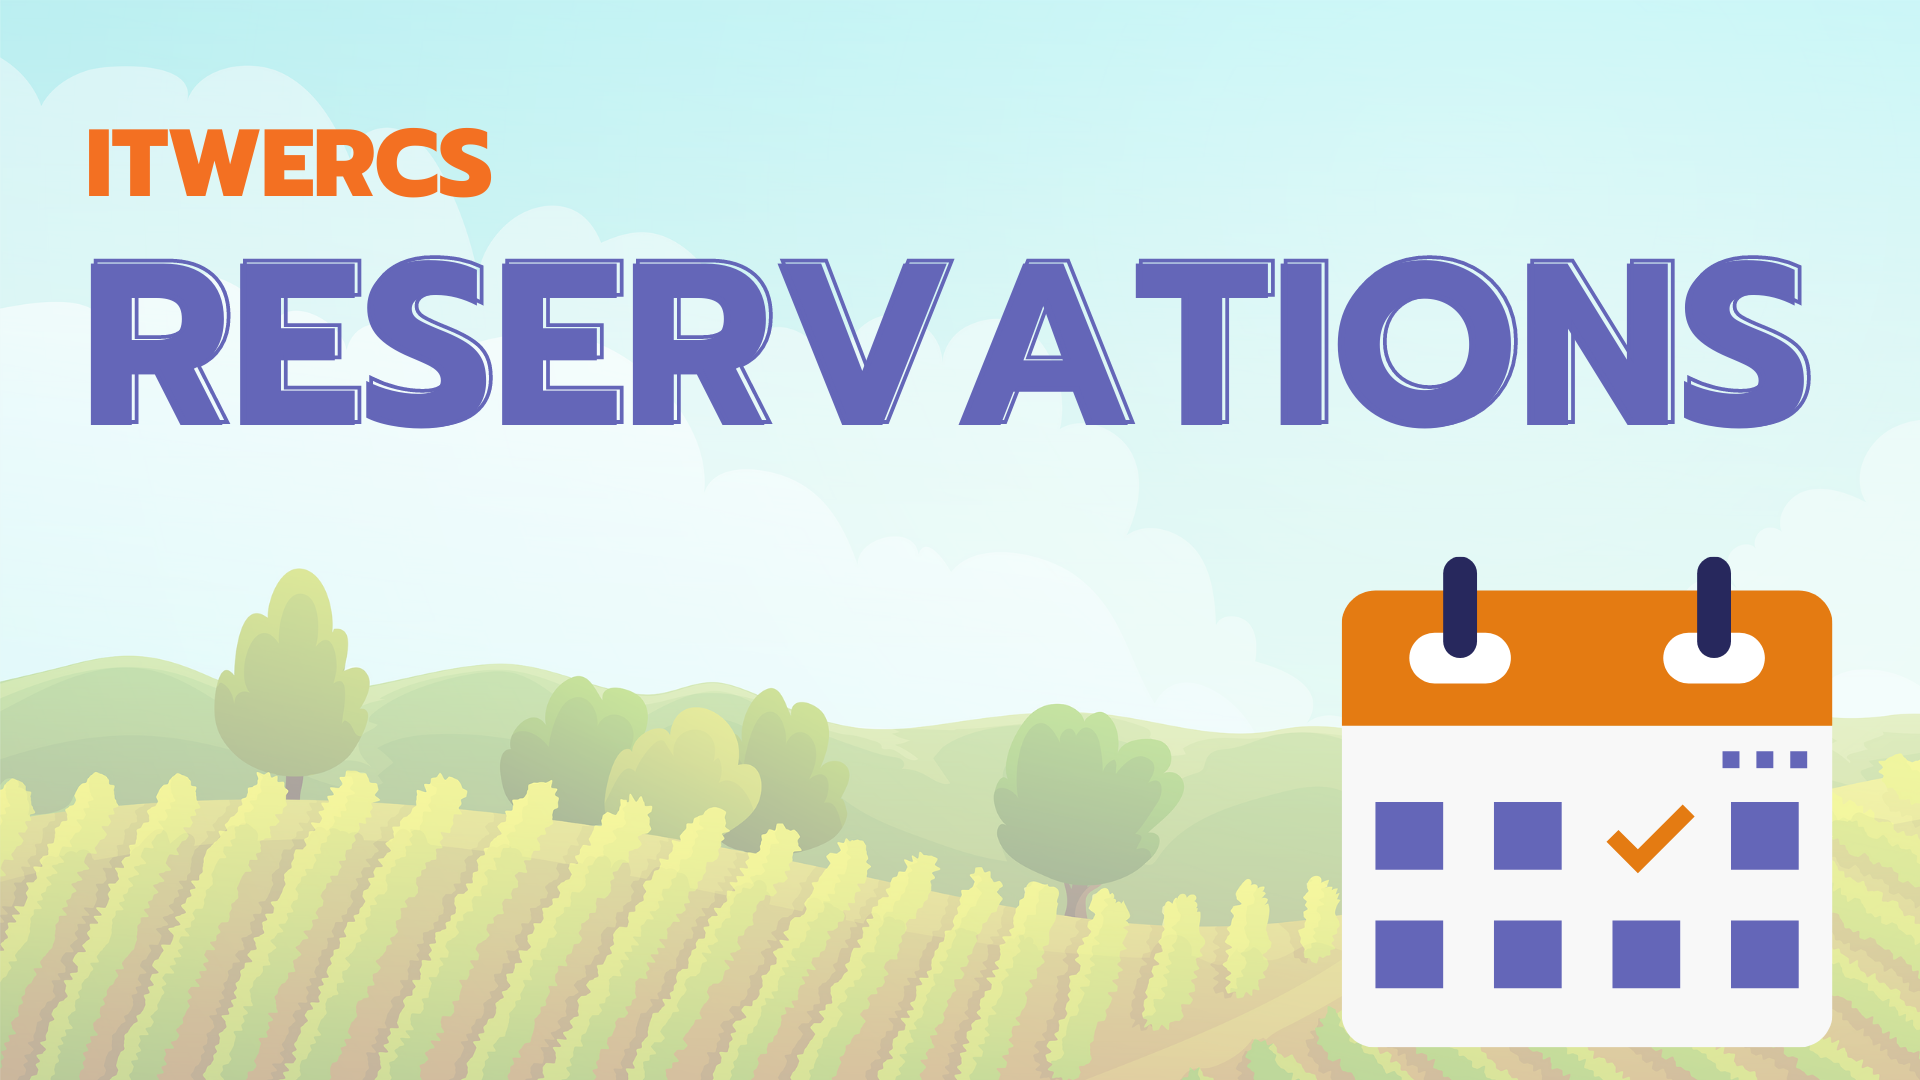 ITWERCS Reservations